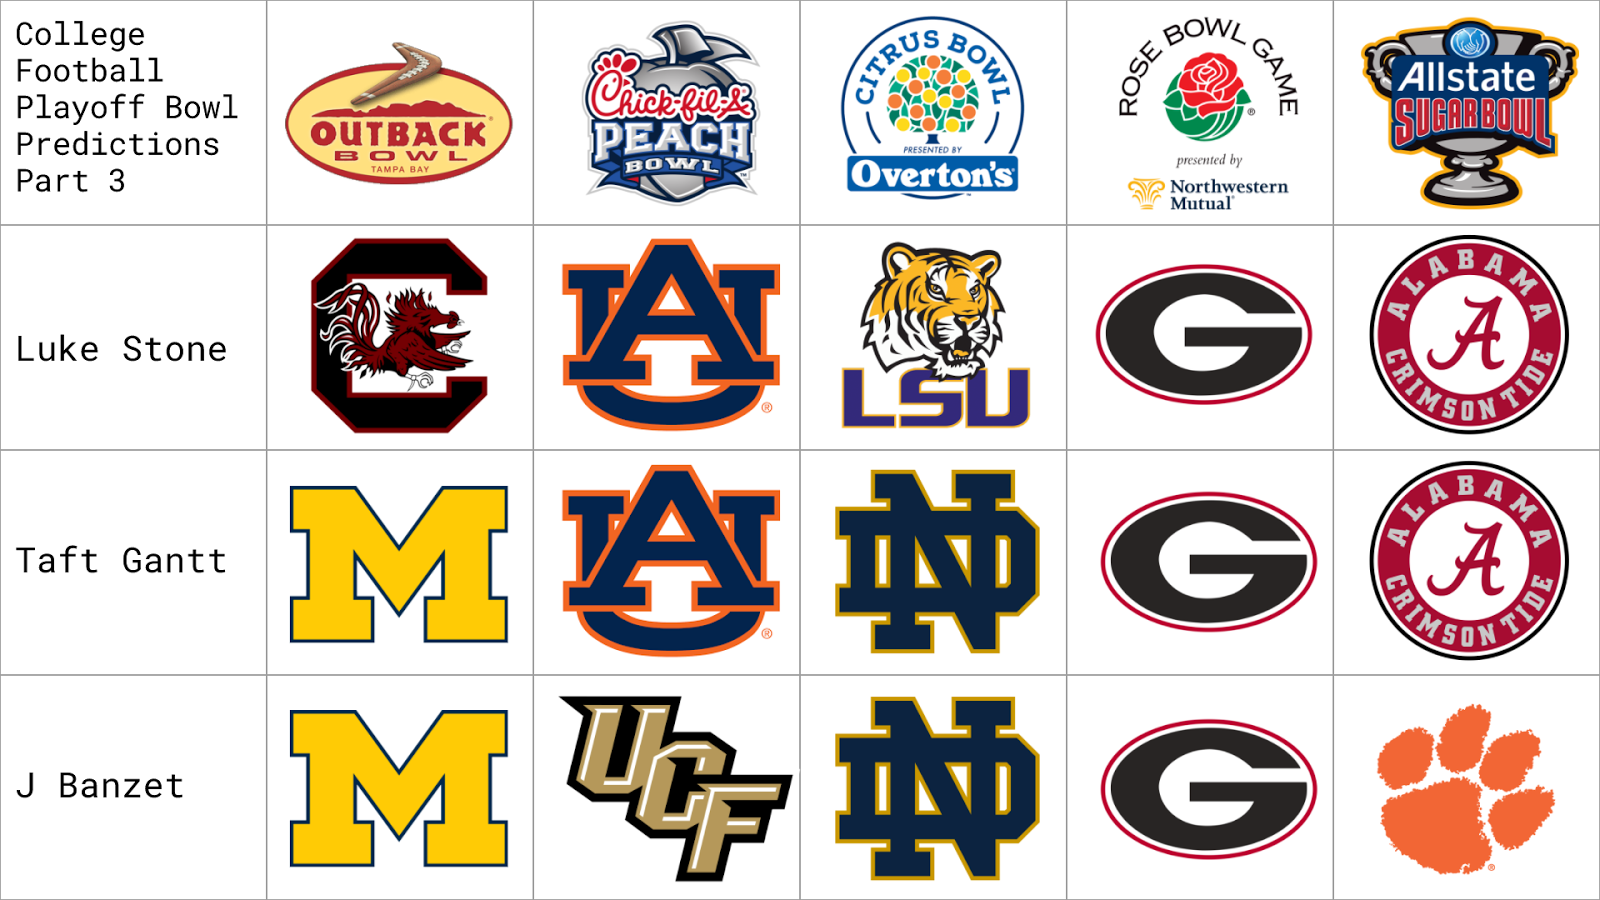 College Football Playoff/New Year's Day Bowl Game Predictions